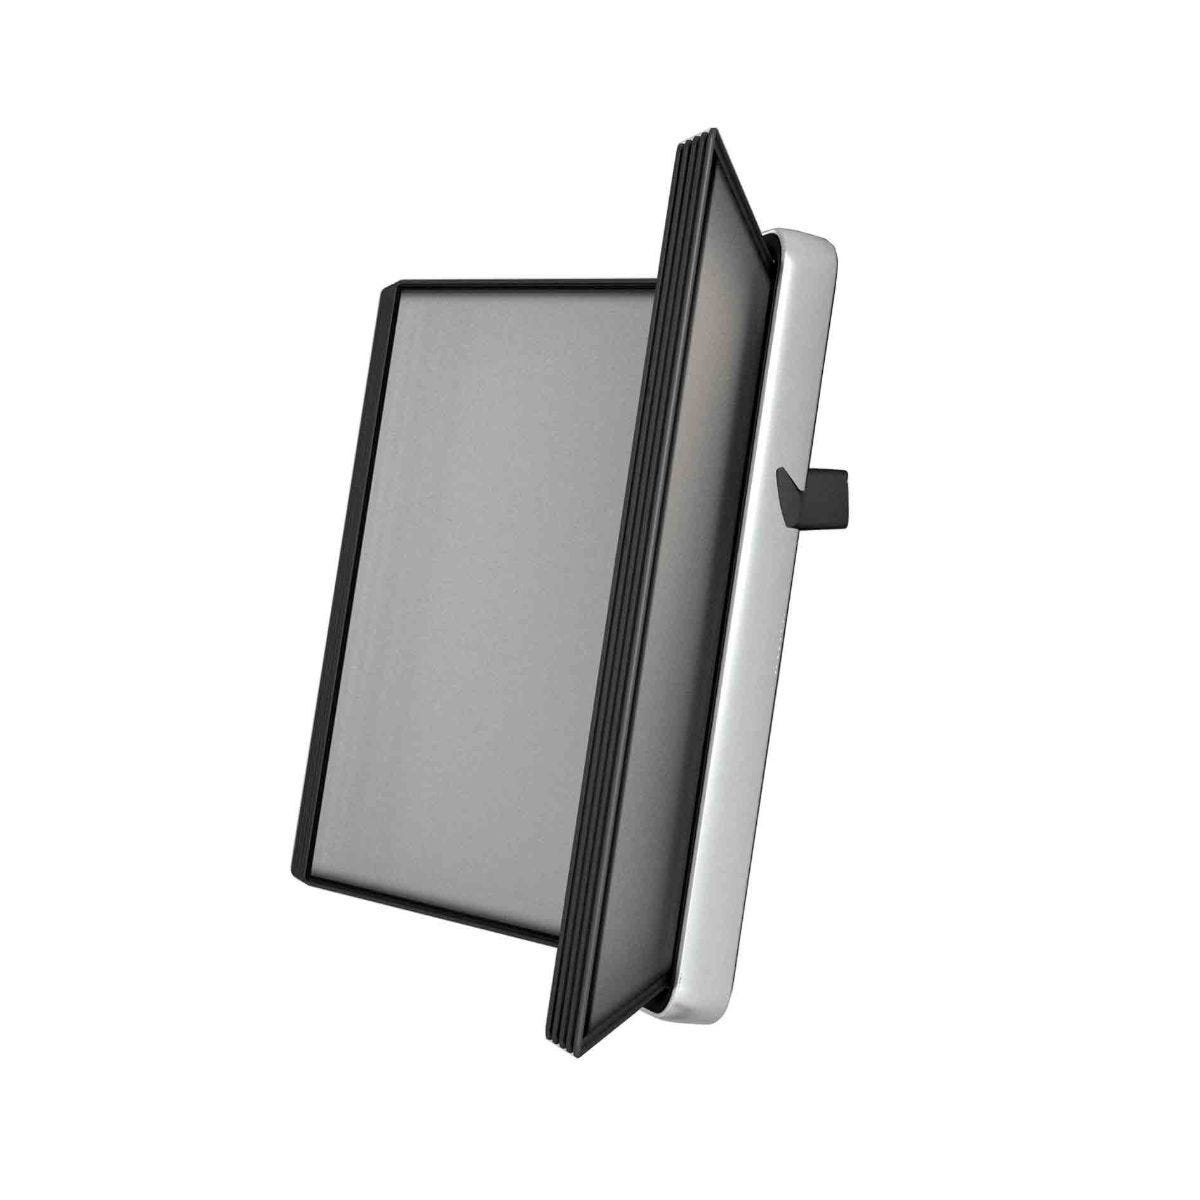 Tarifold Veo Wall Display System A4 With 10 Pockets Black